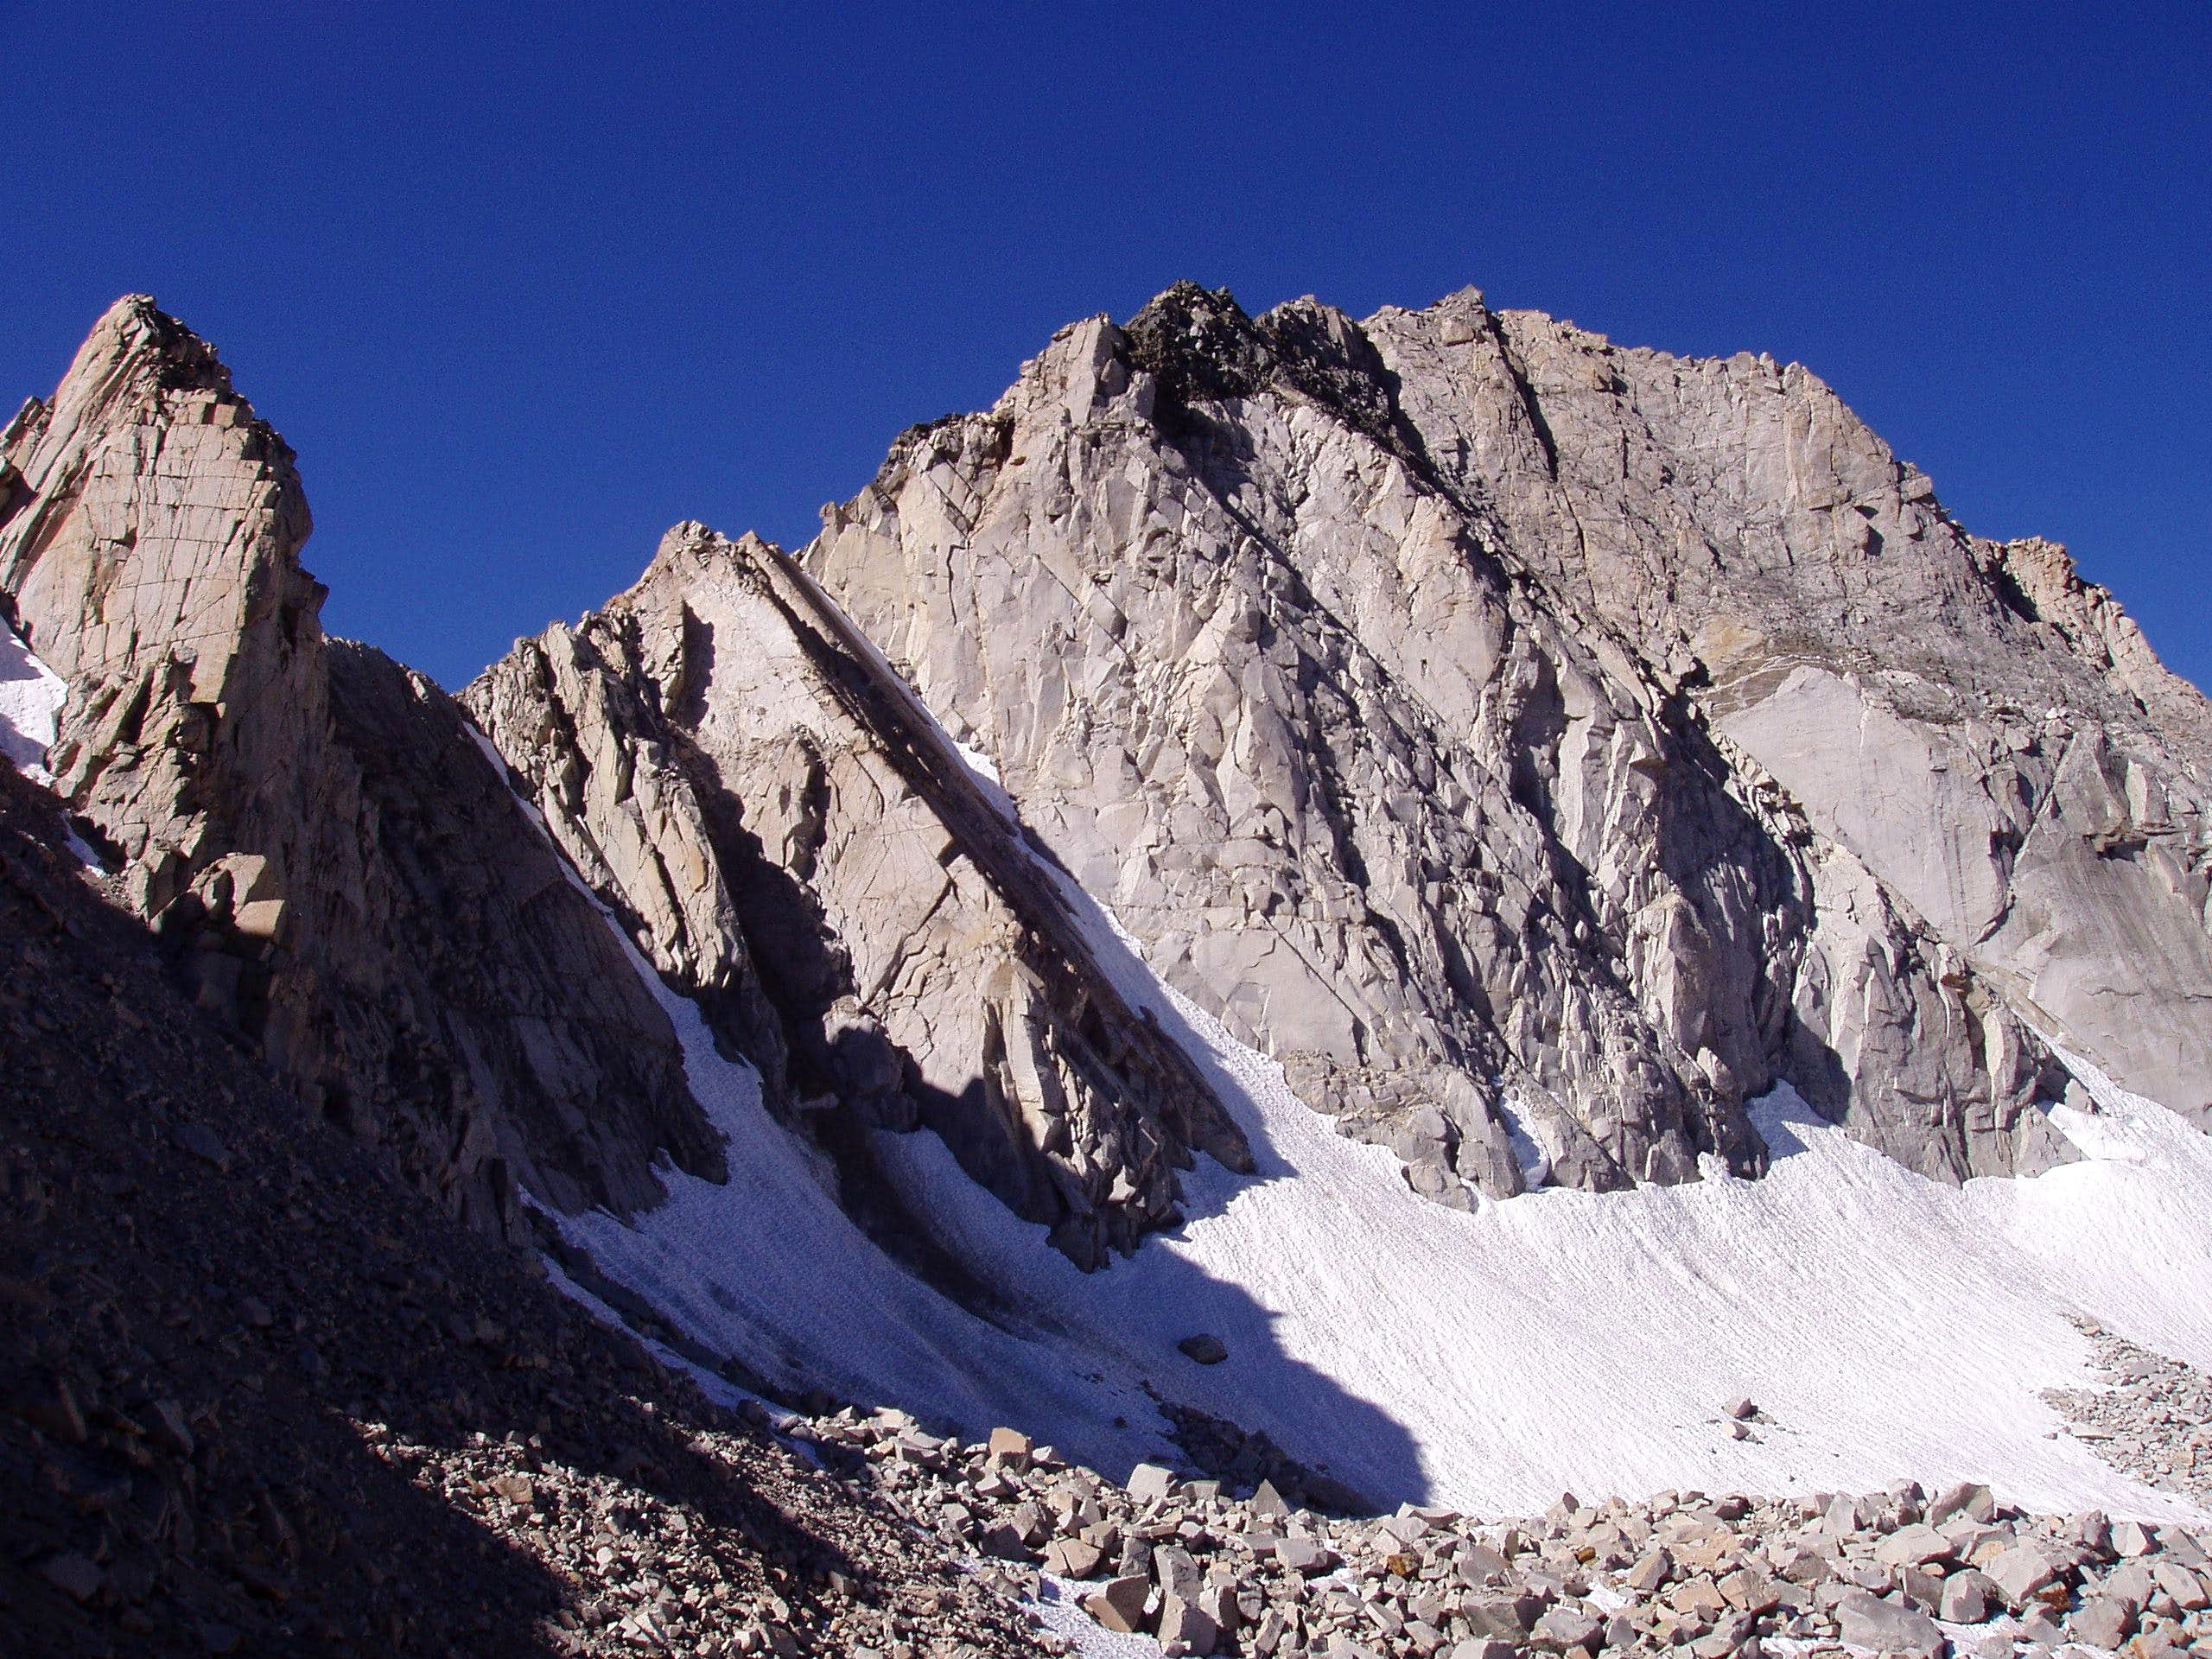 Giraud Peak; When a Good Day Turns Terribly Bad